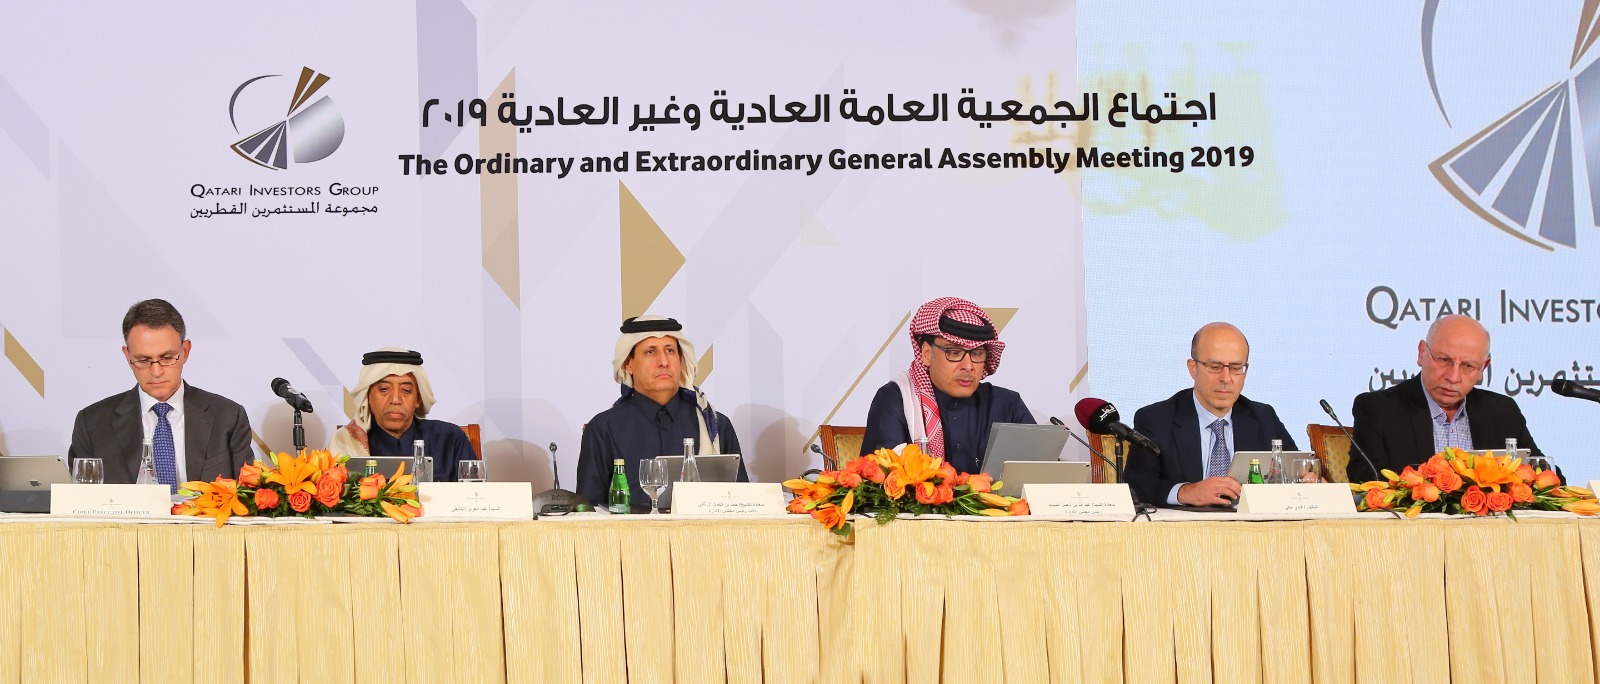 THE AGM OF QATARI INVESTORS GROUP ENDORSES ITEMS ON ITS AGENDA AND APPROVES THE DISTRIBUTION OF 7.5% CASH DIVIDEND